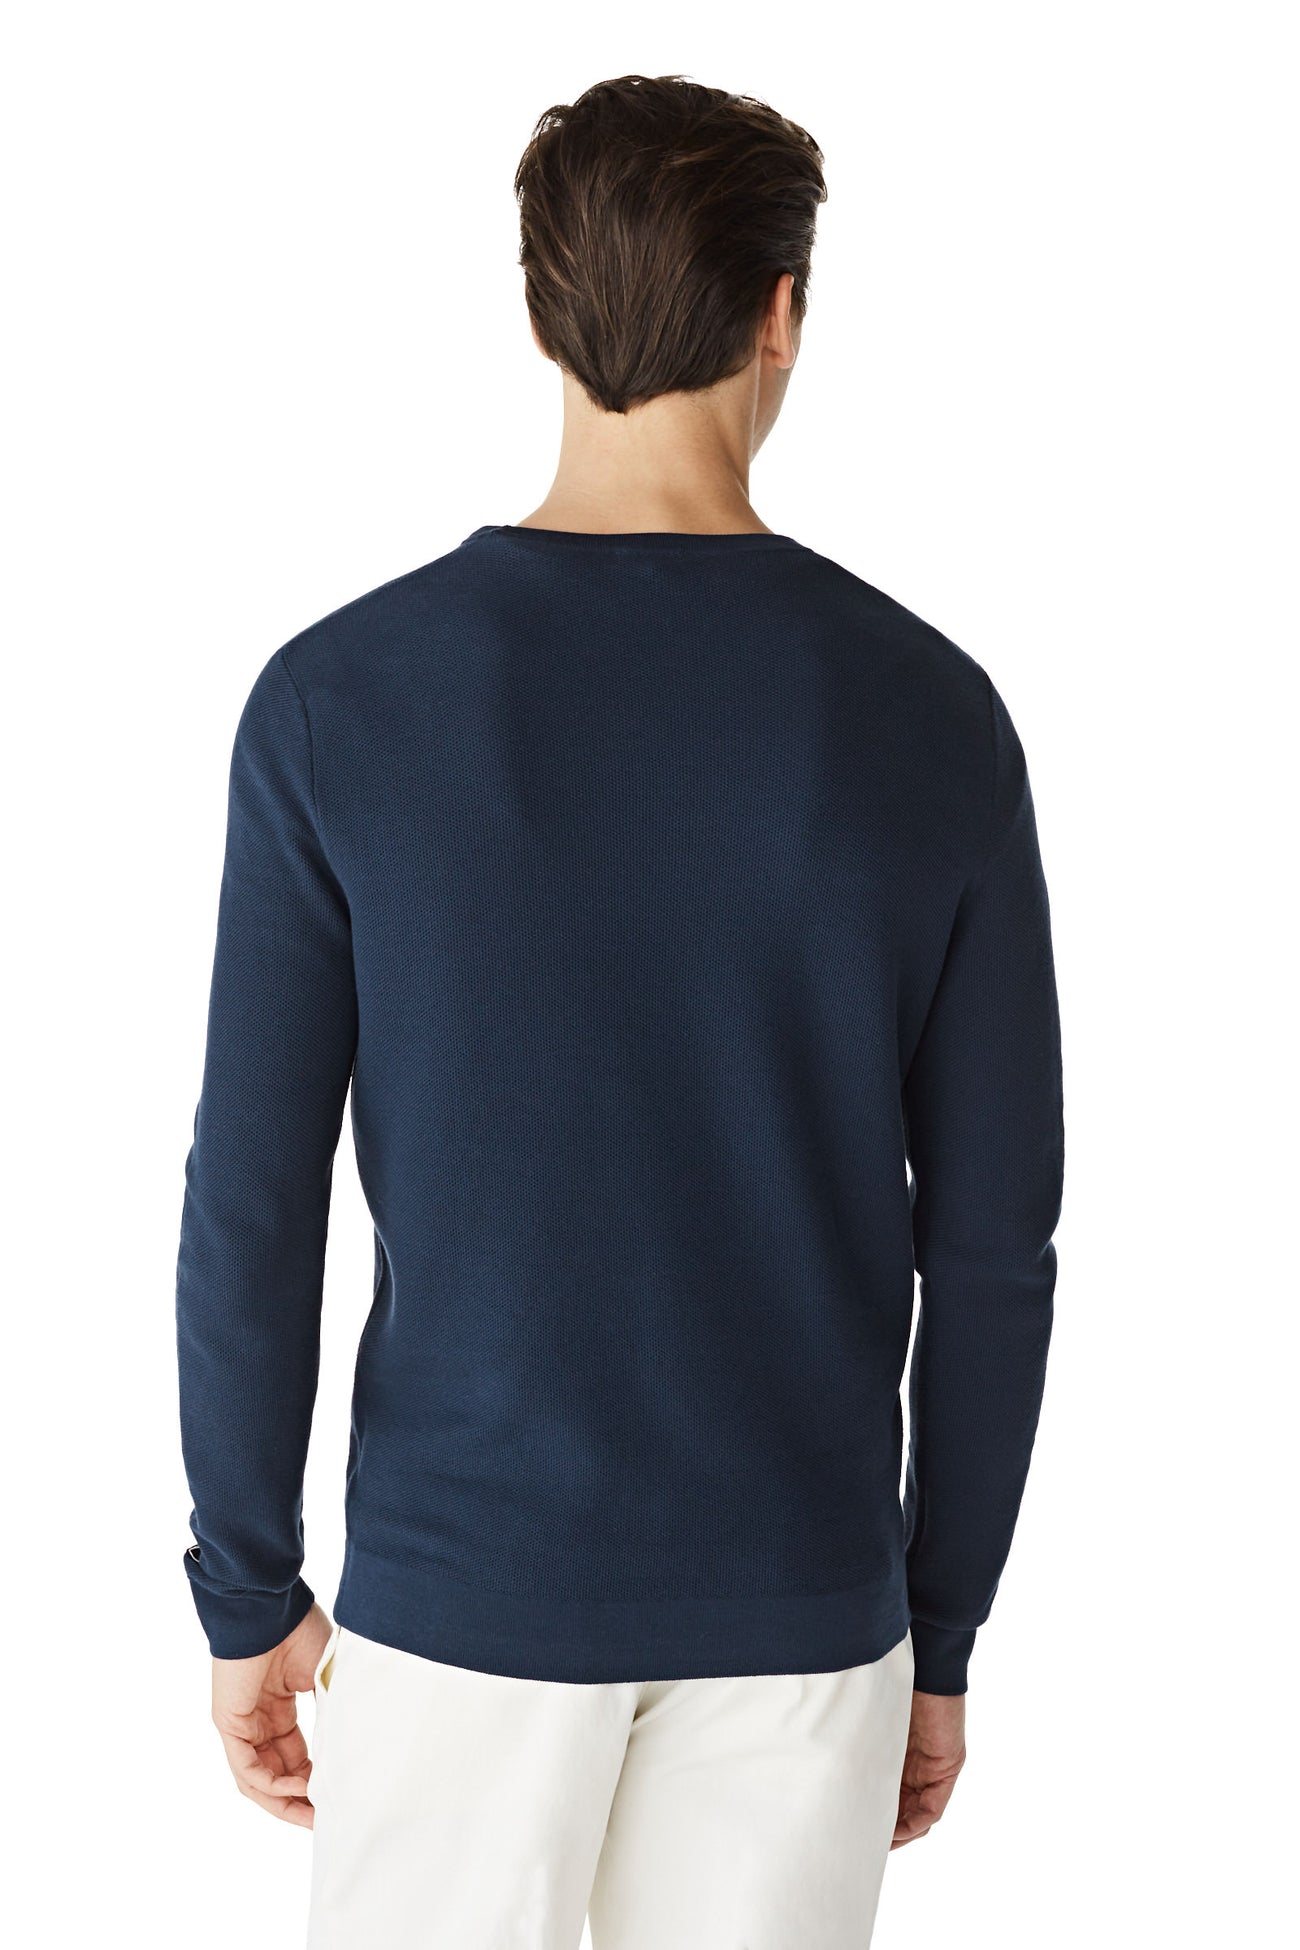 McG Crew neck sweater with fine structure